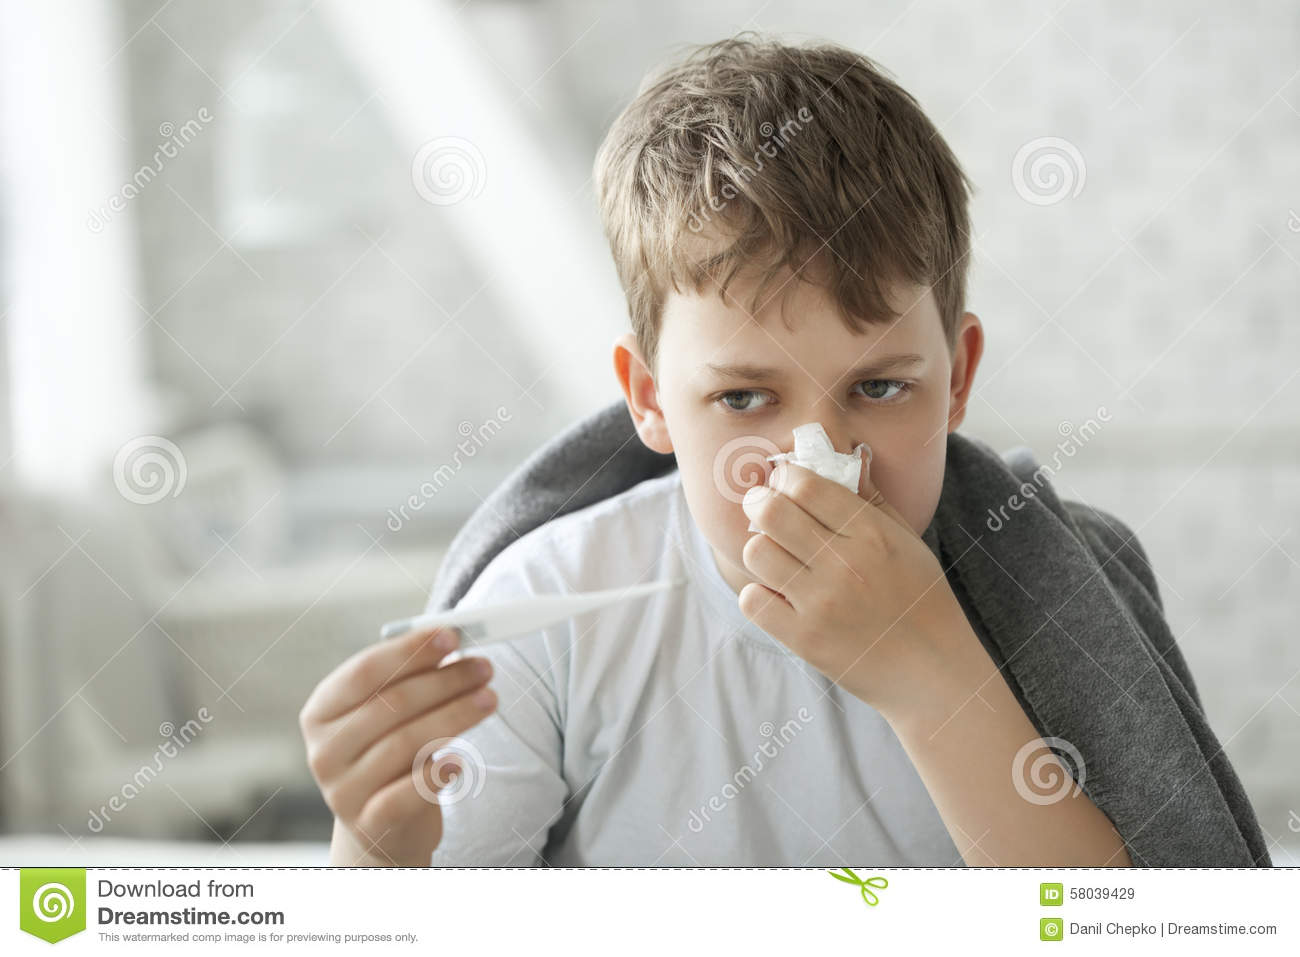 Boy Wipes His Nose With Tissue Stock Photo - Image: 58039429